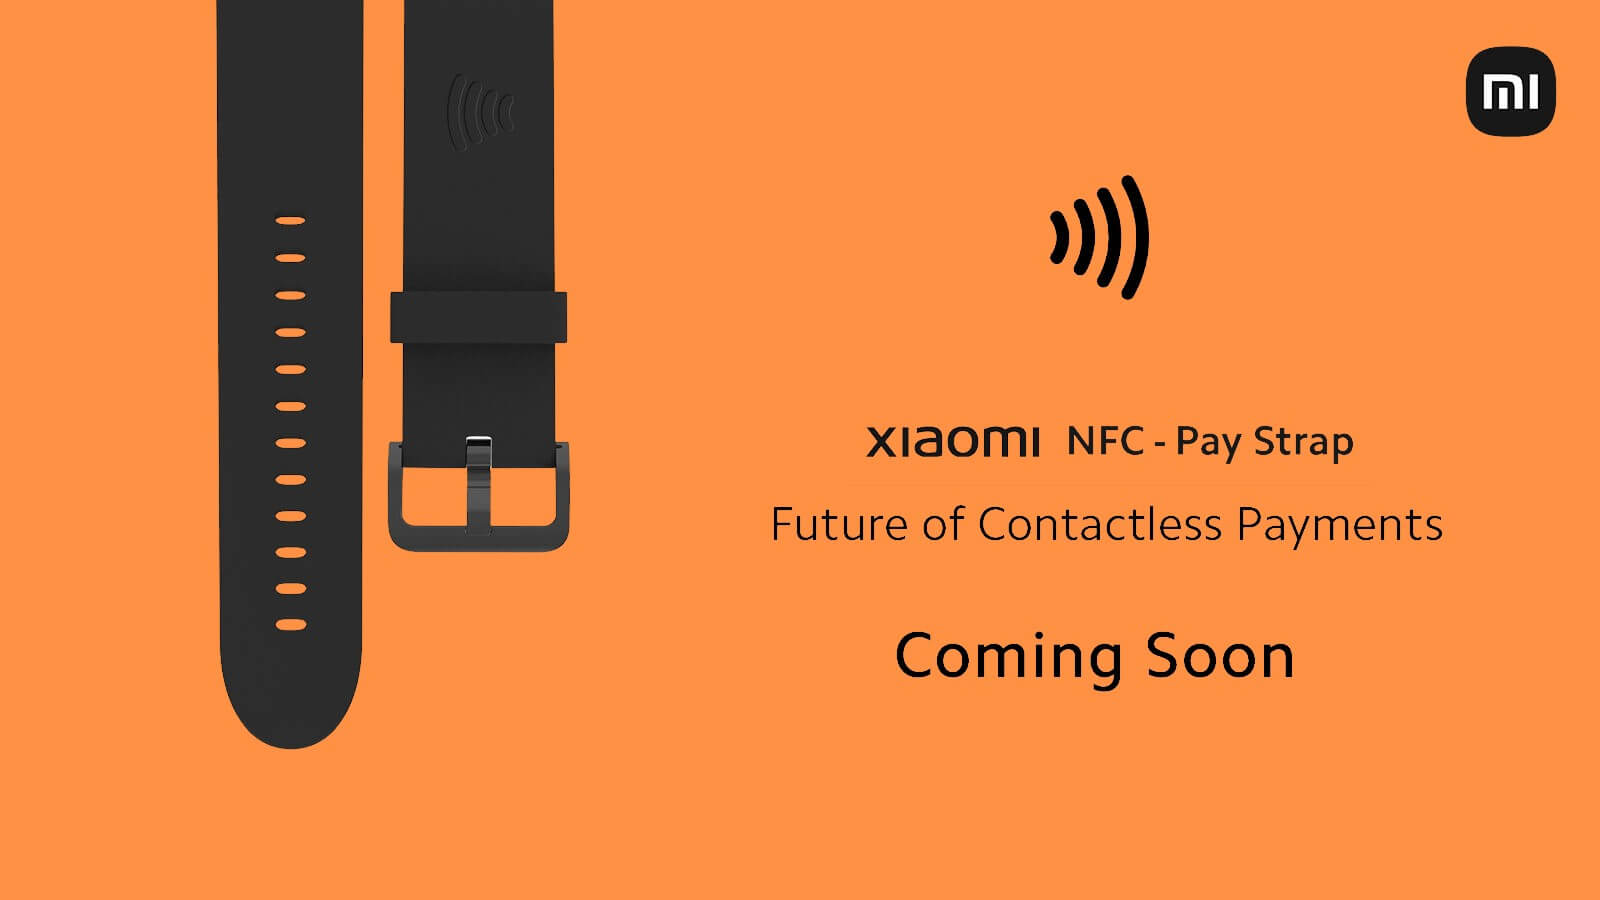 NFC Pay Strap